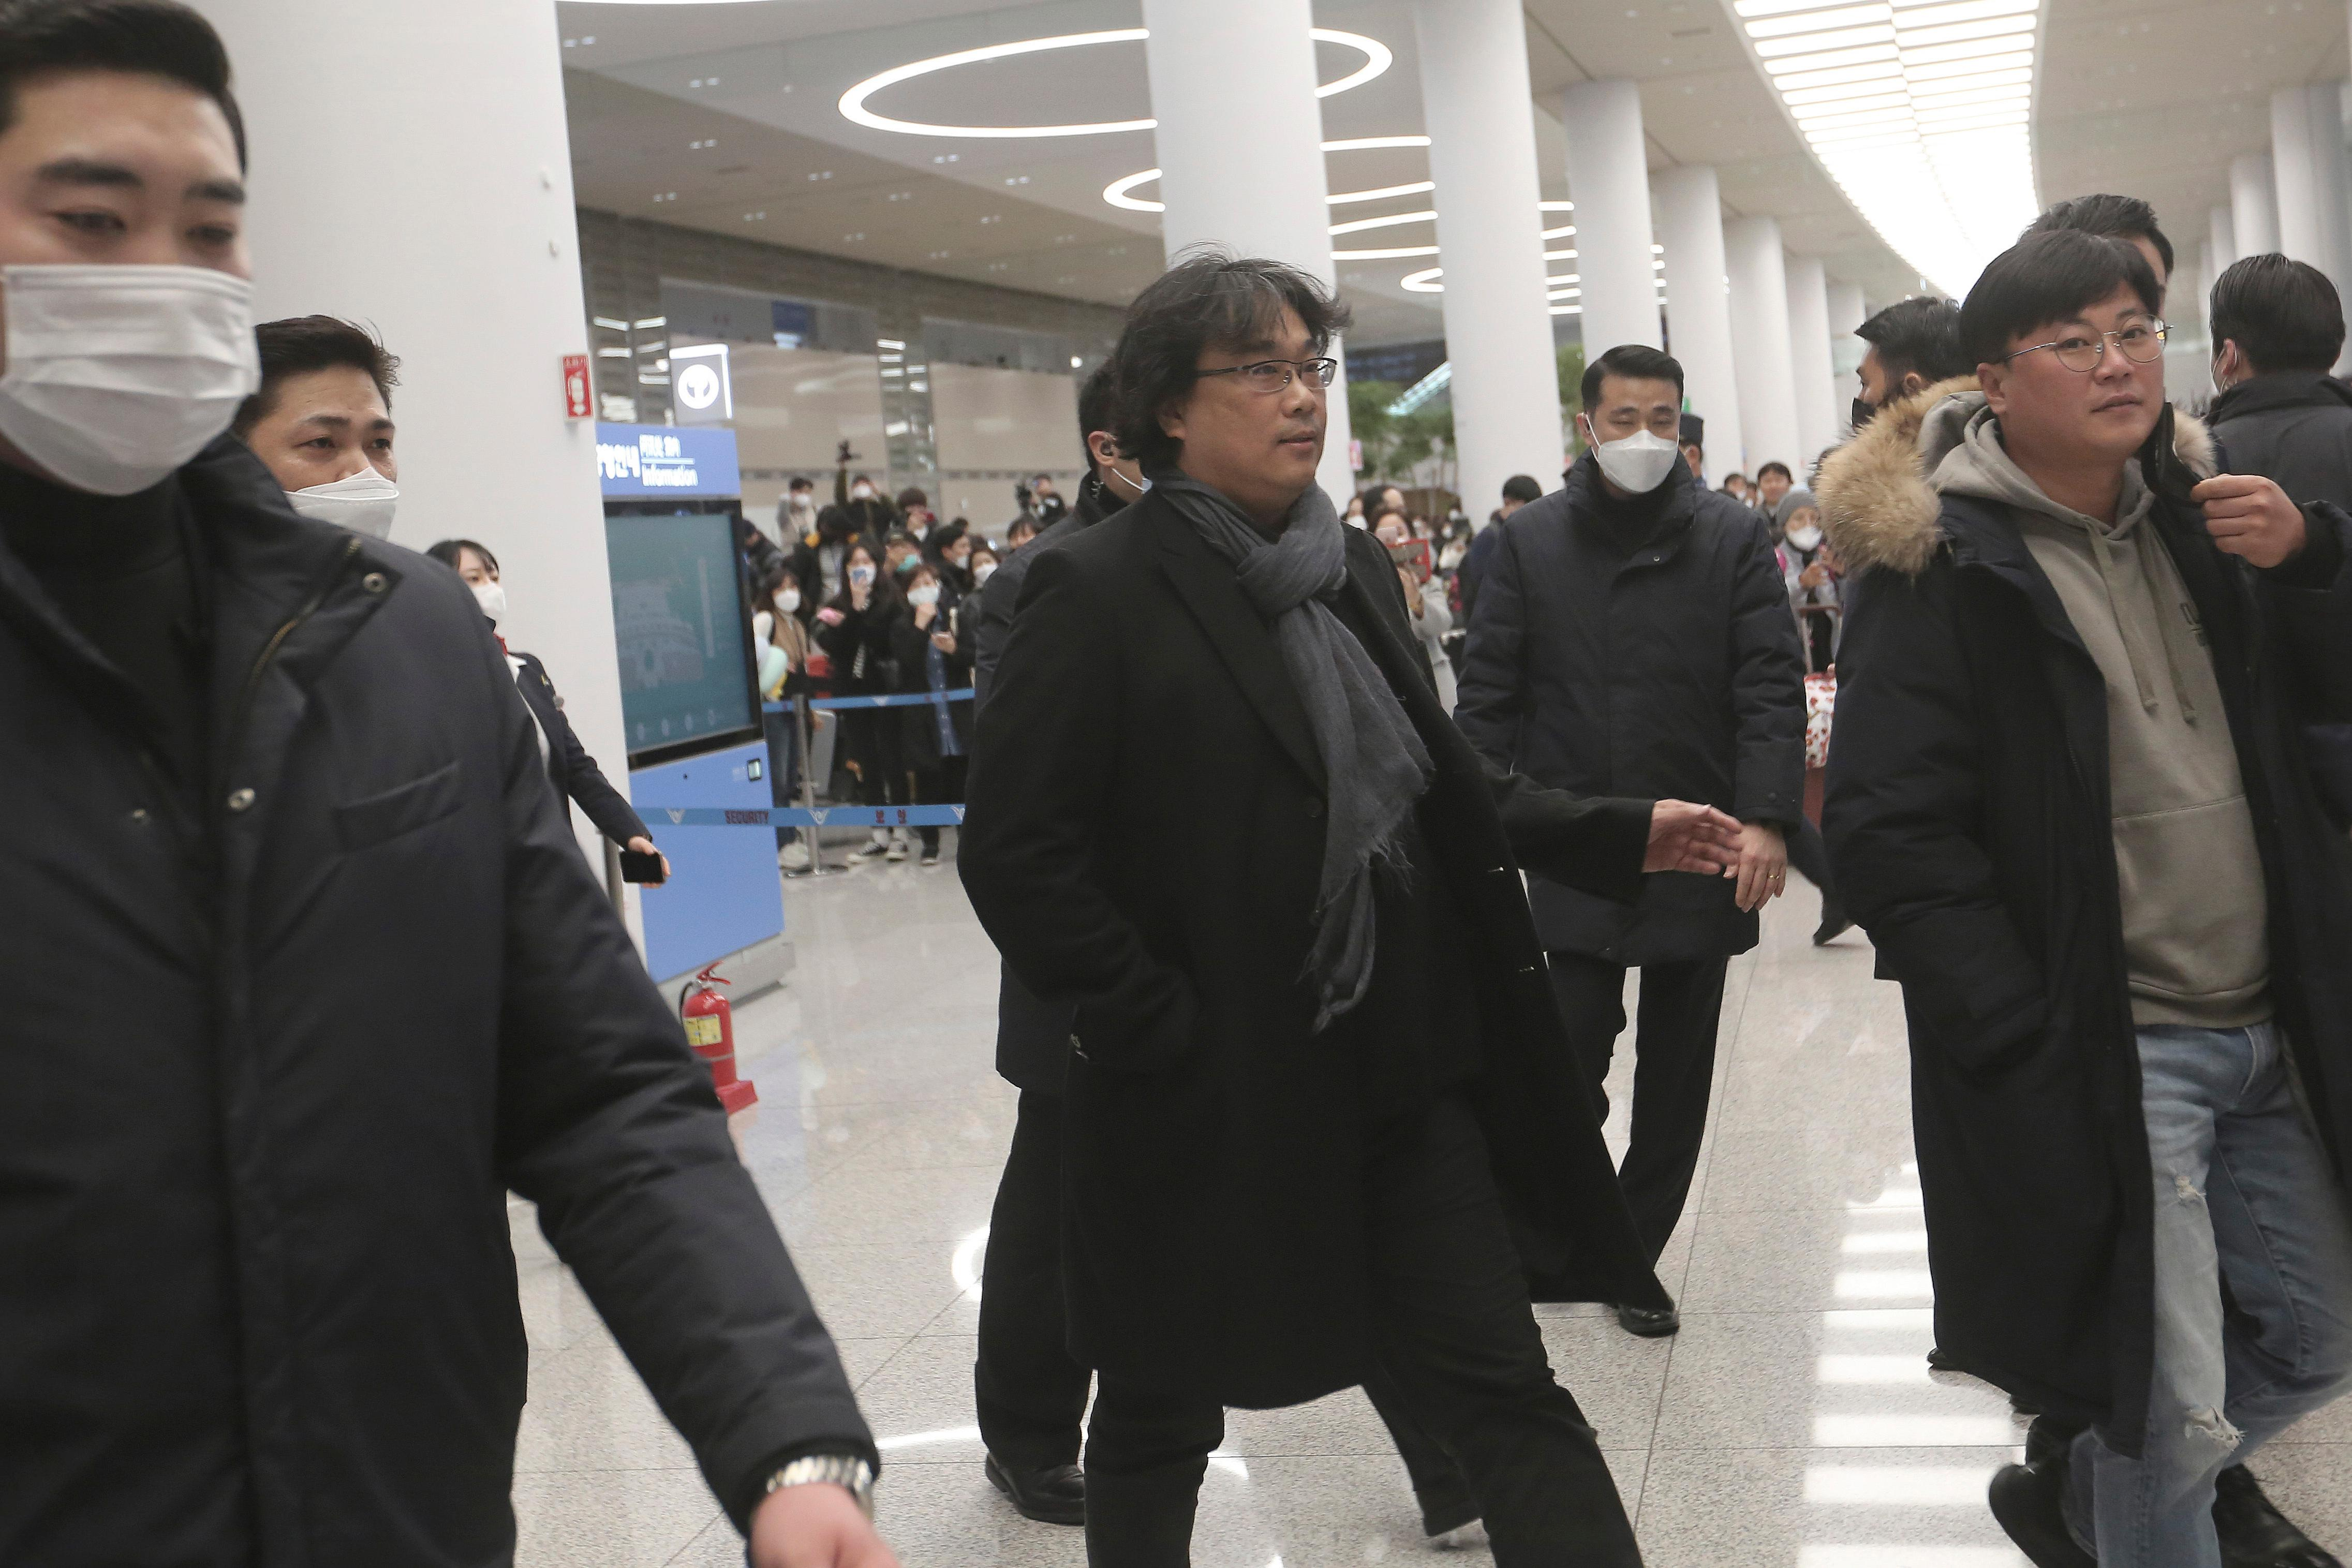 "South Korean director Bong Joon-ho, center, arrives at the Incheon International Airport in Incheon, South Korea, Sunday, Feb. 16, 2020. South Koreans are reveling in writer-director Bong's dark comic thriller, ""Parasite,"" which won this year's Academy Awards for best film and best international feature. The movie itself, however, doesn't put the country in a particularly positive light. (AP Photo/Ahn Young-joon)"